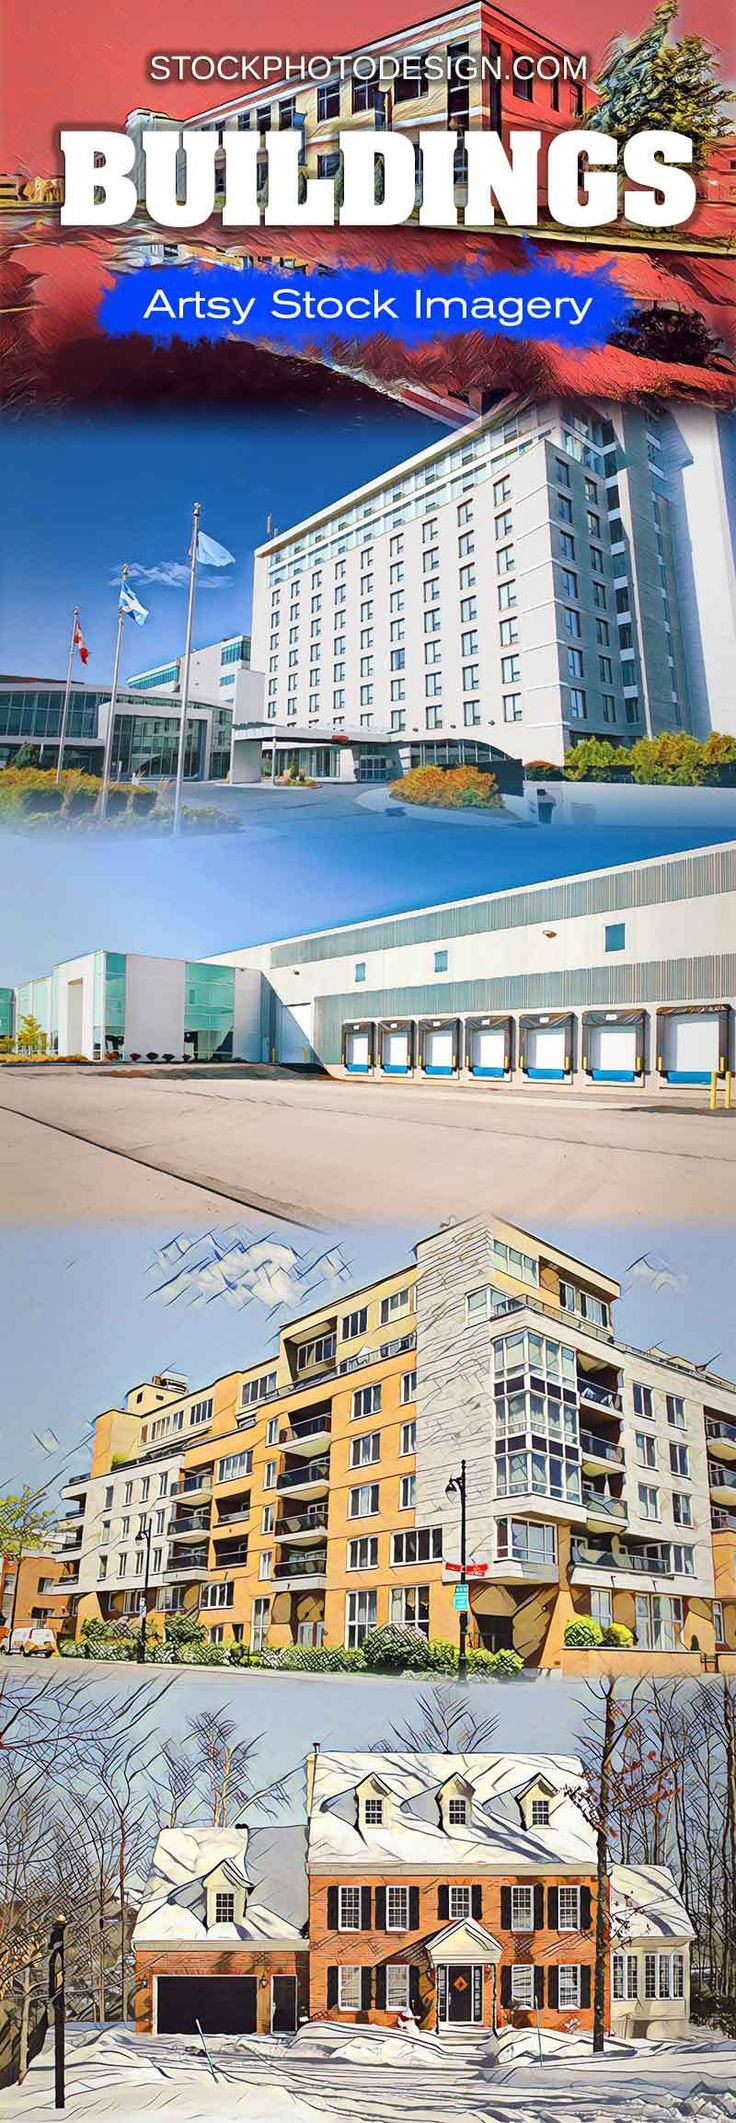 Artsy Buildings Stock Imagery at Great Prices - Stockphotodesign.com